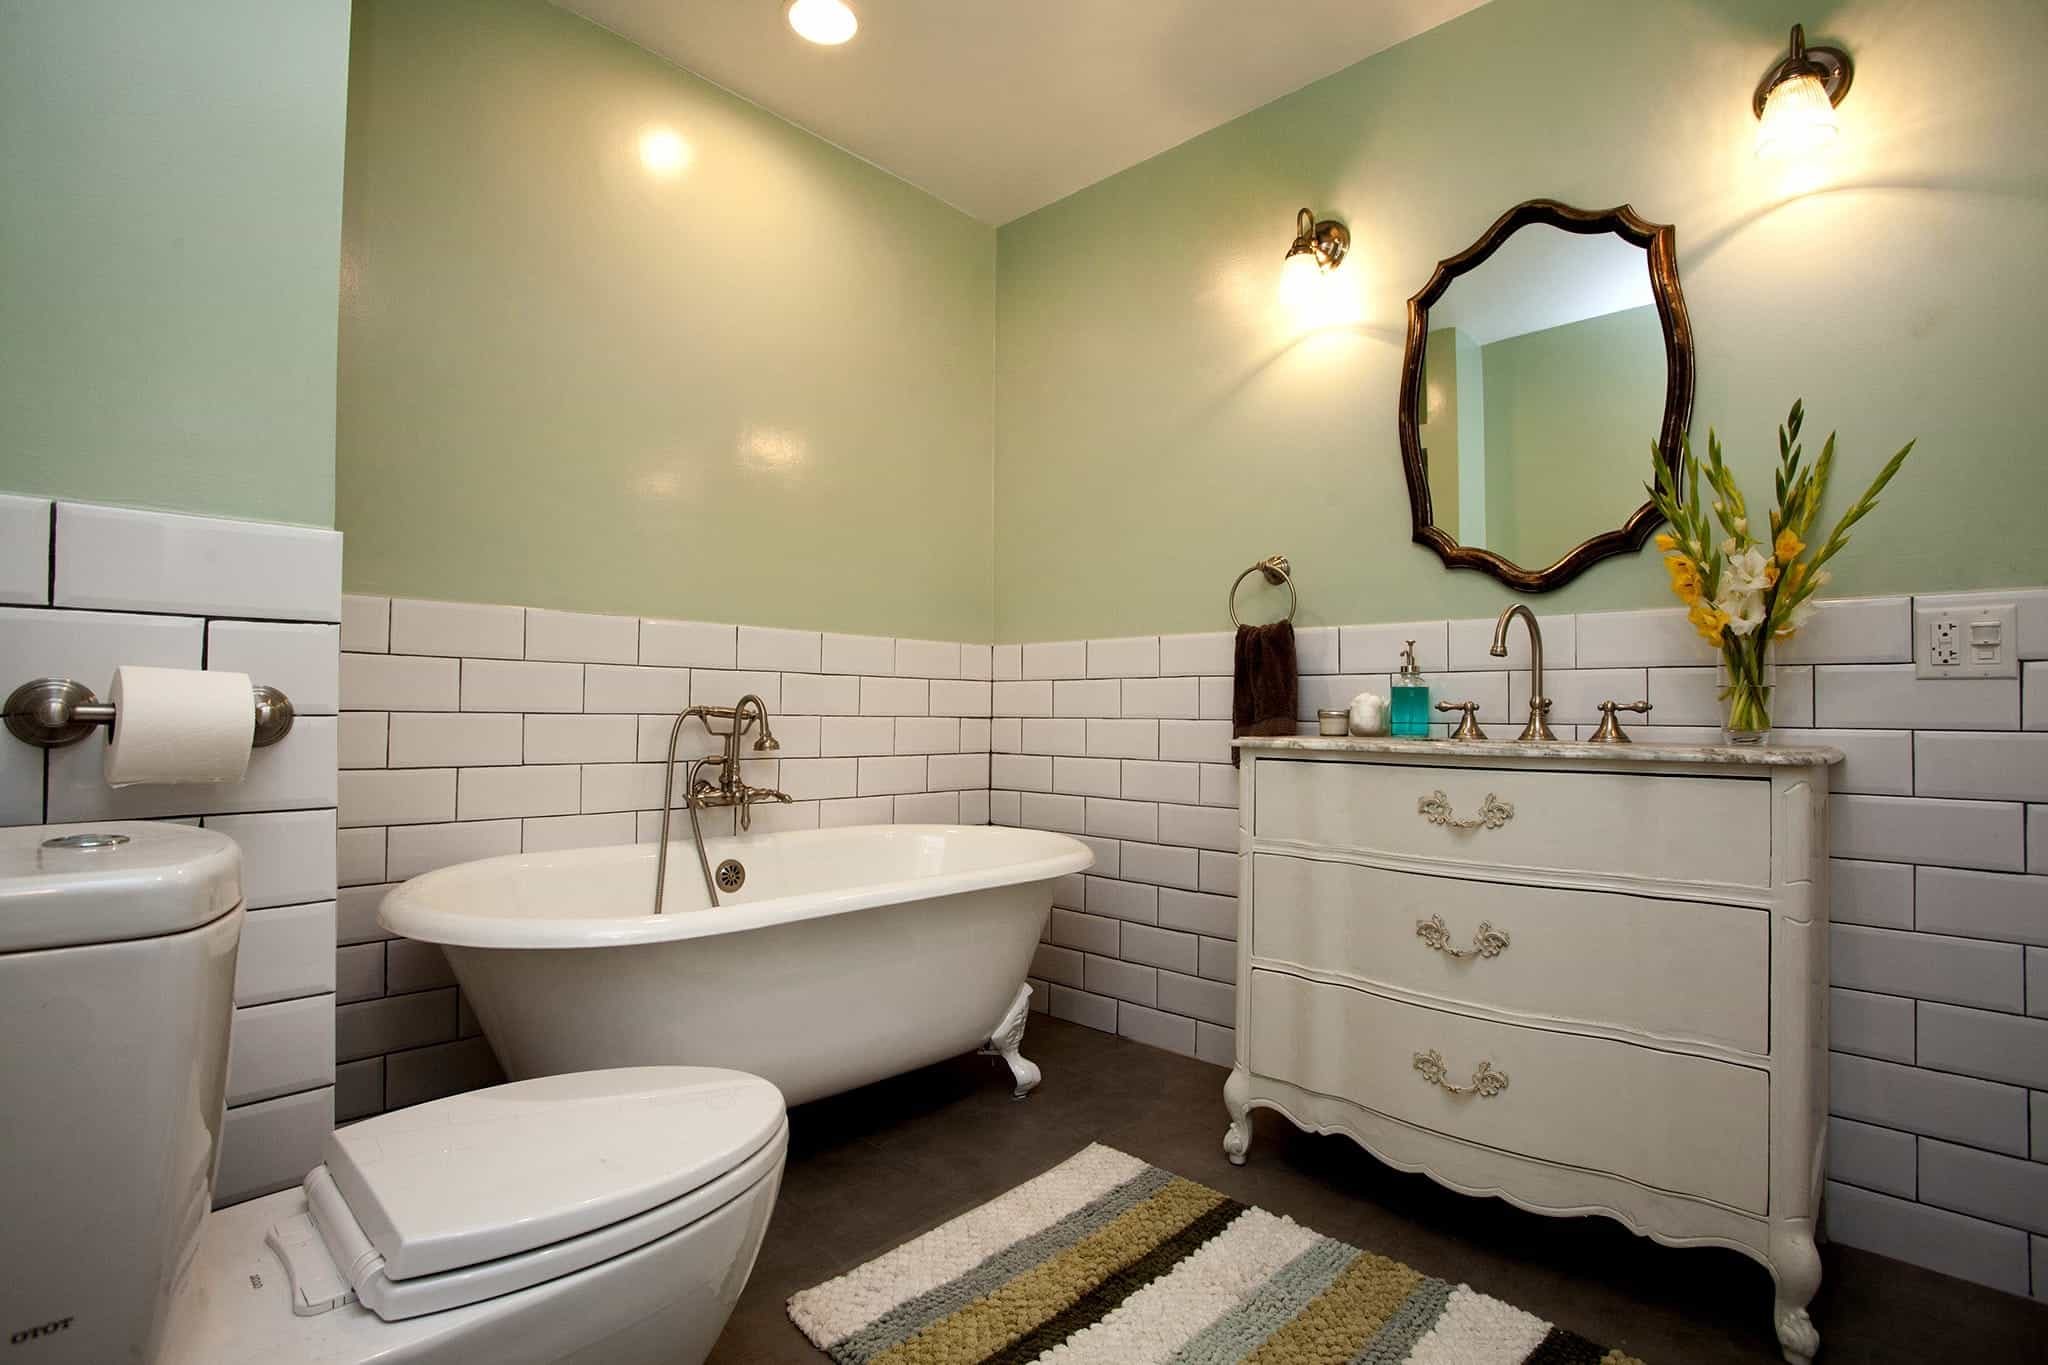 Vintage Vanity And Mirror For Modern Elegant White Spa Bathroom With Freestanding Tub (Image 11 of 12)